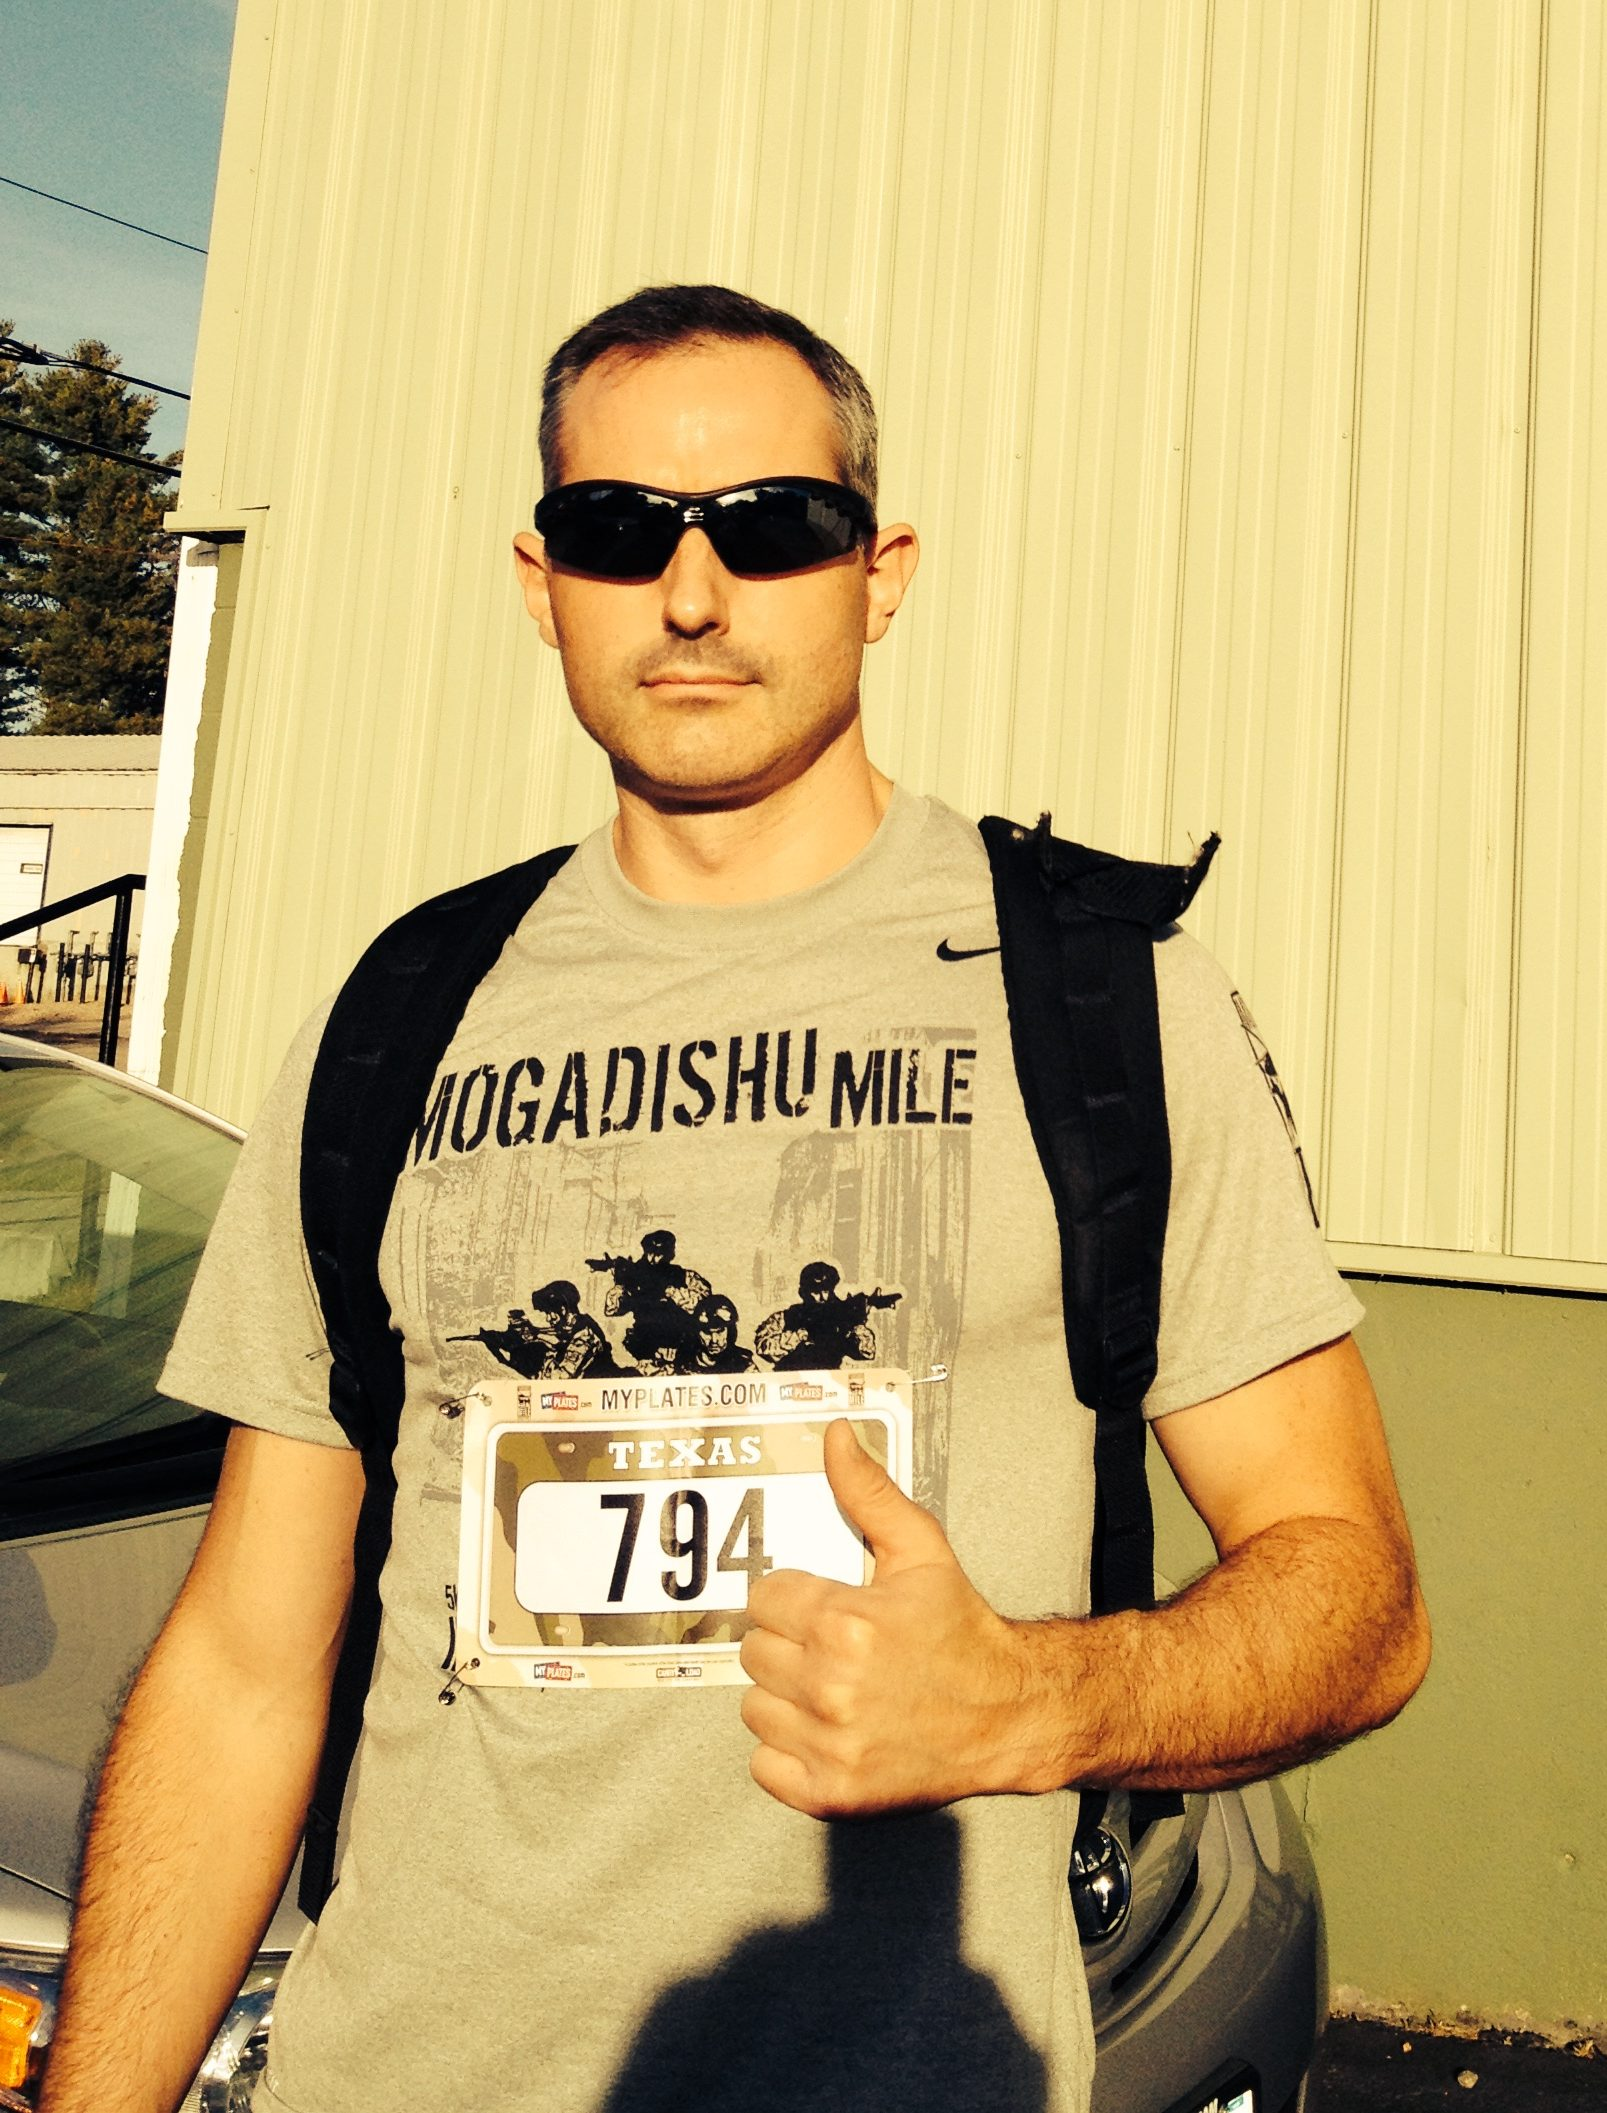 Running the Mogadishu Mile virtual 5k on October 3, 2013 with a weighted ruck...